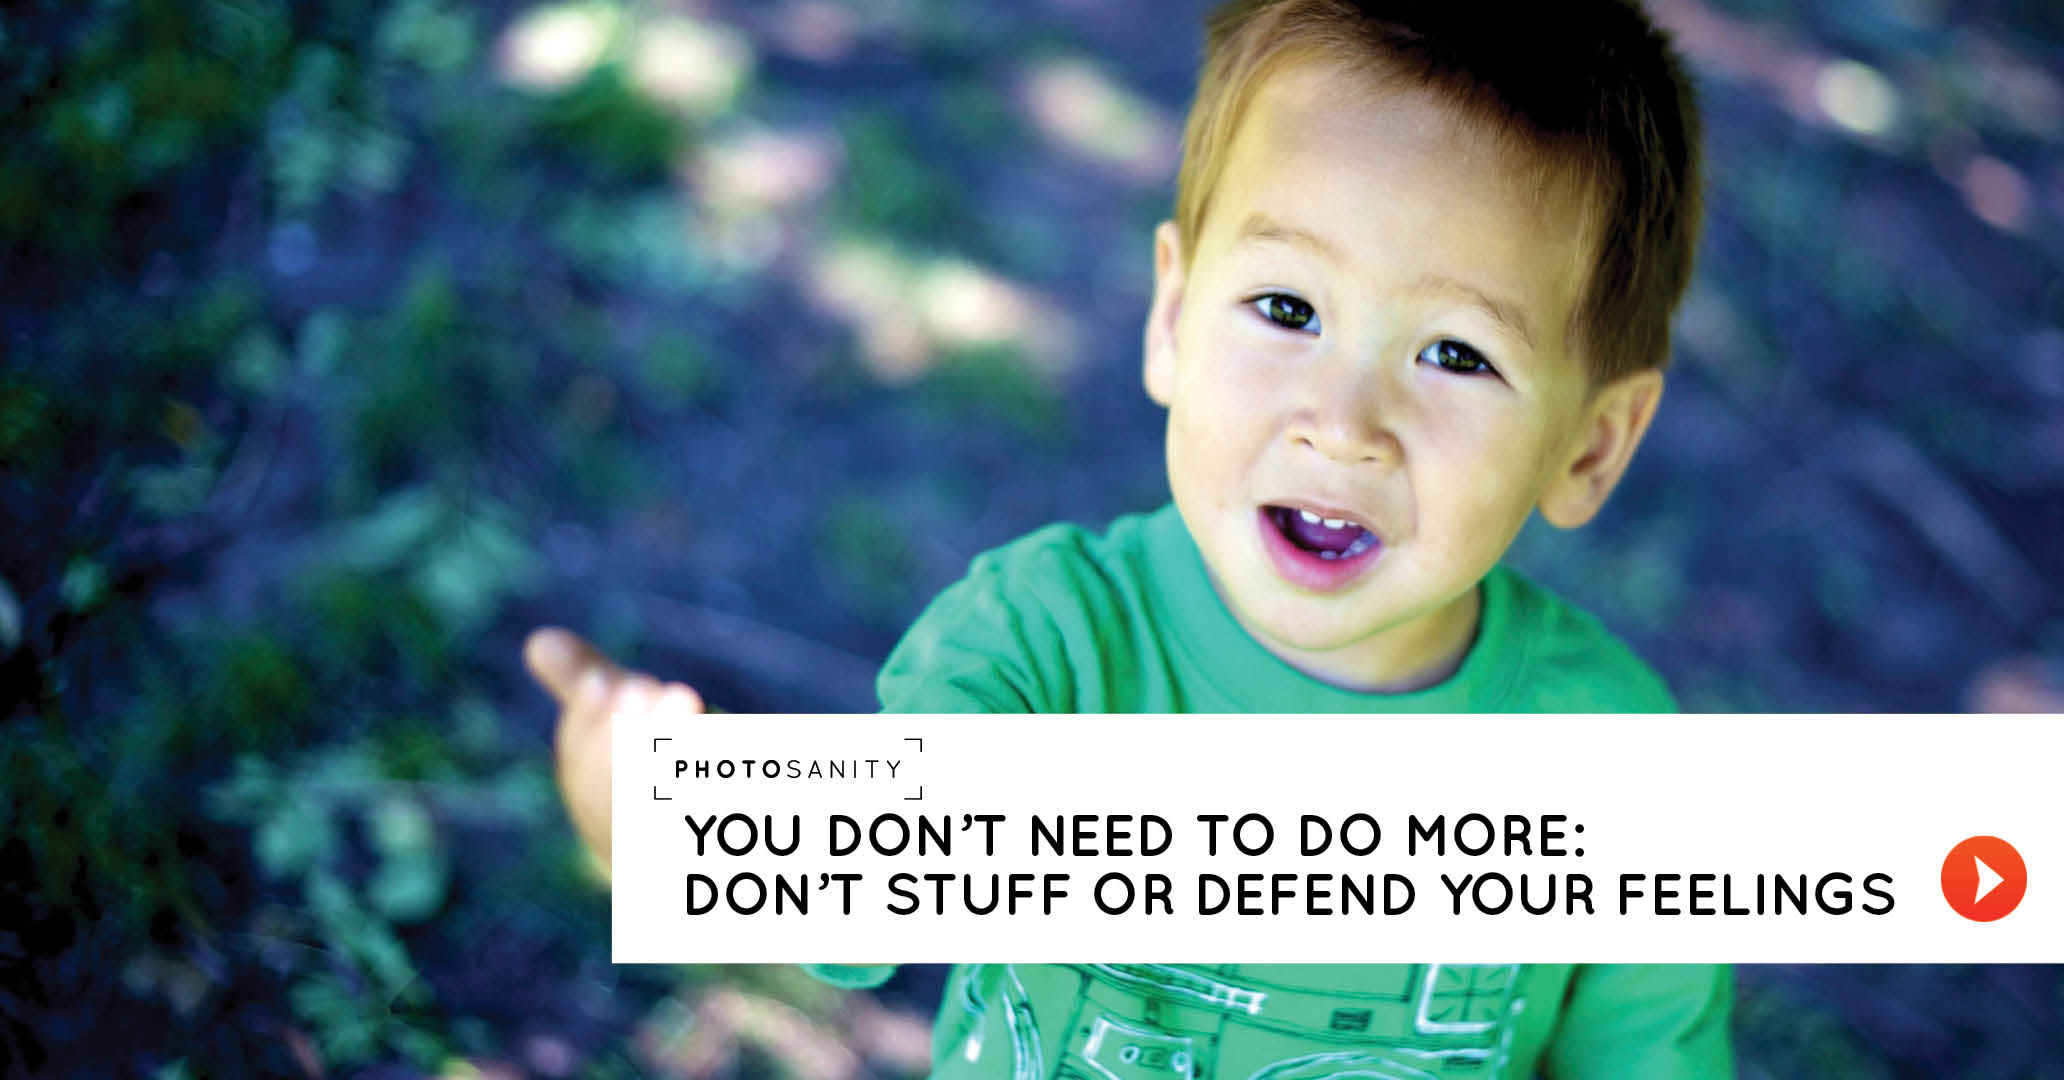 You don't need to do more: don't stuff or defend your feelings (part 2 of 4)